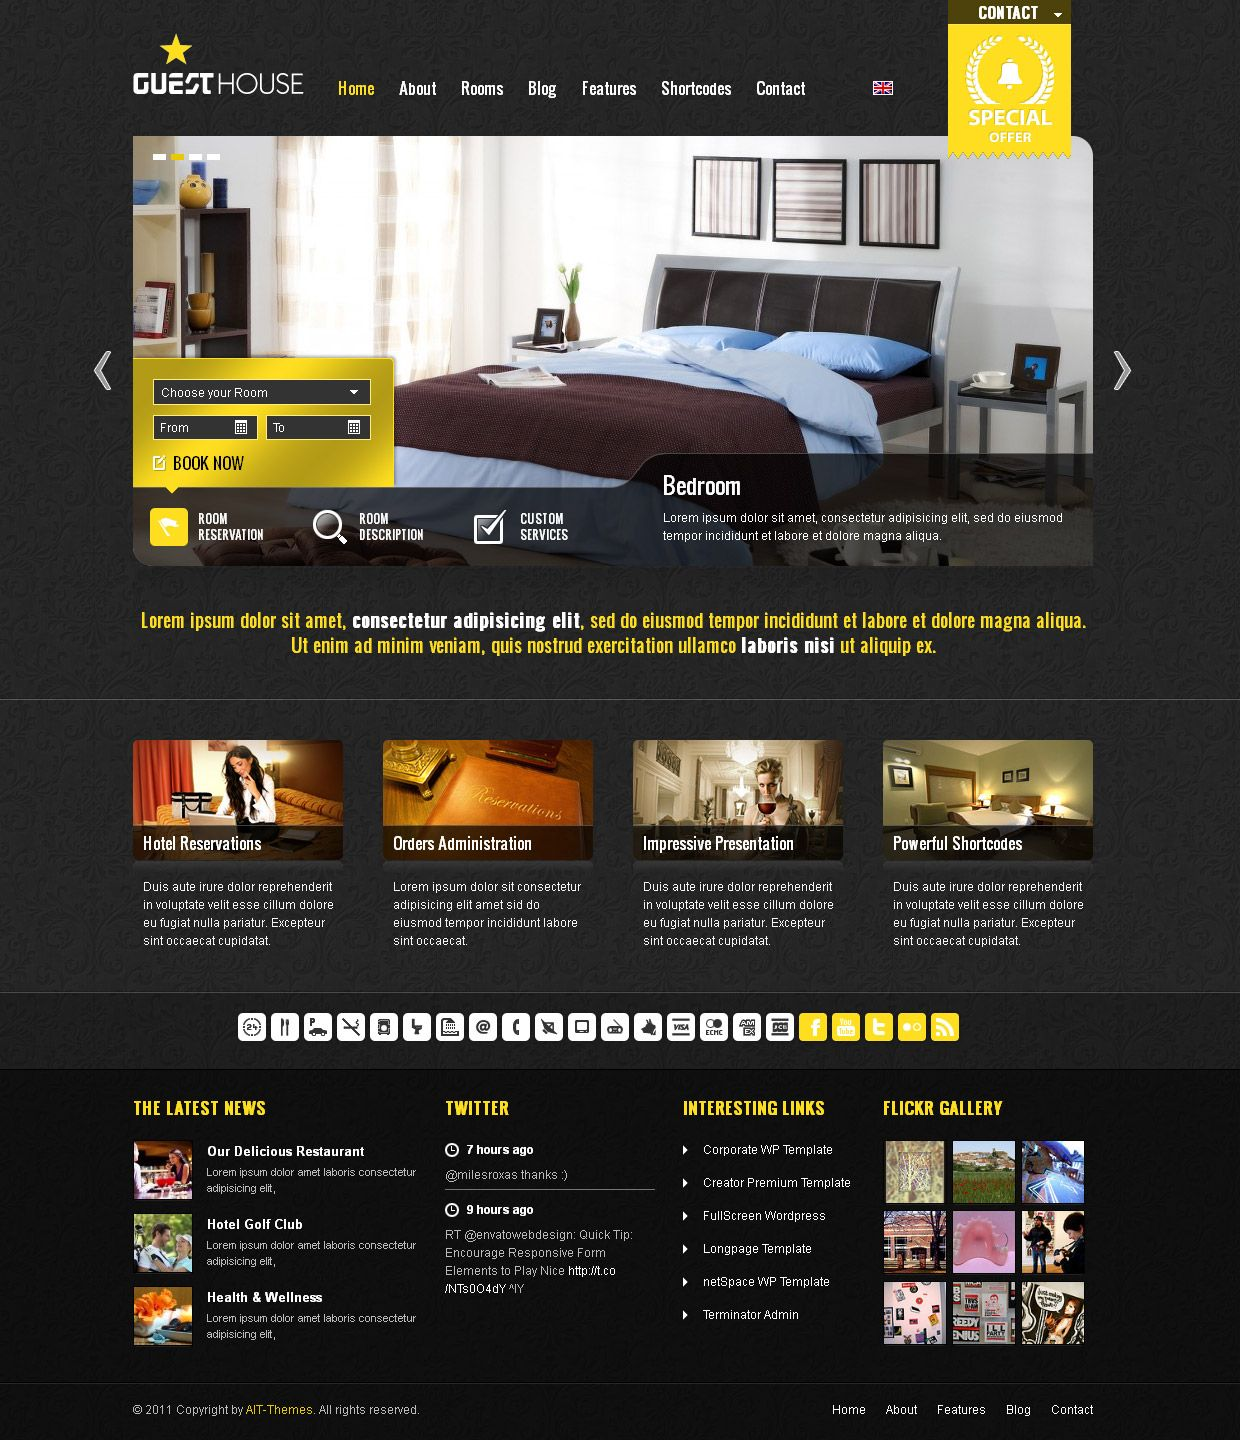 http://themeforest.net/item/guesthouse-hotel-bb-or-campsite-premium ...